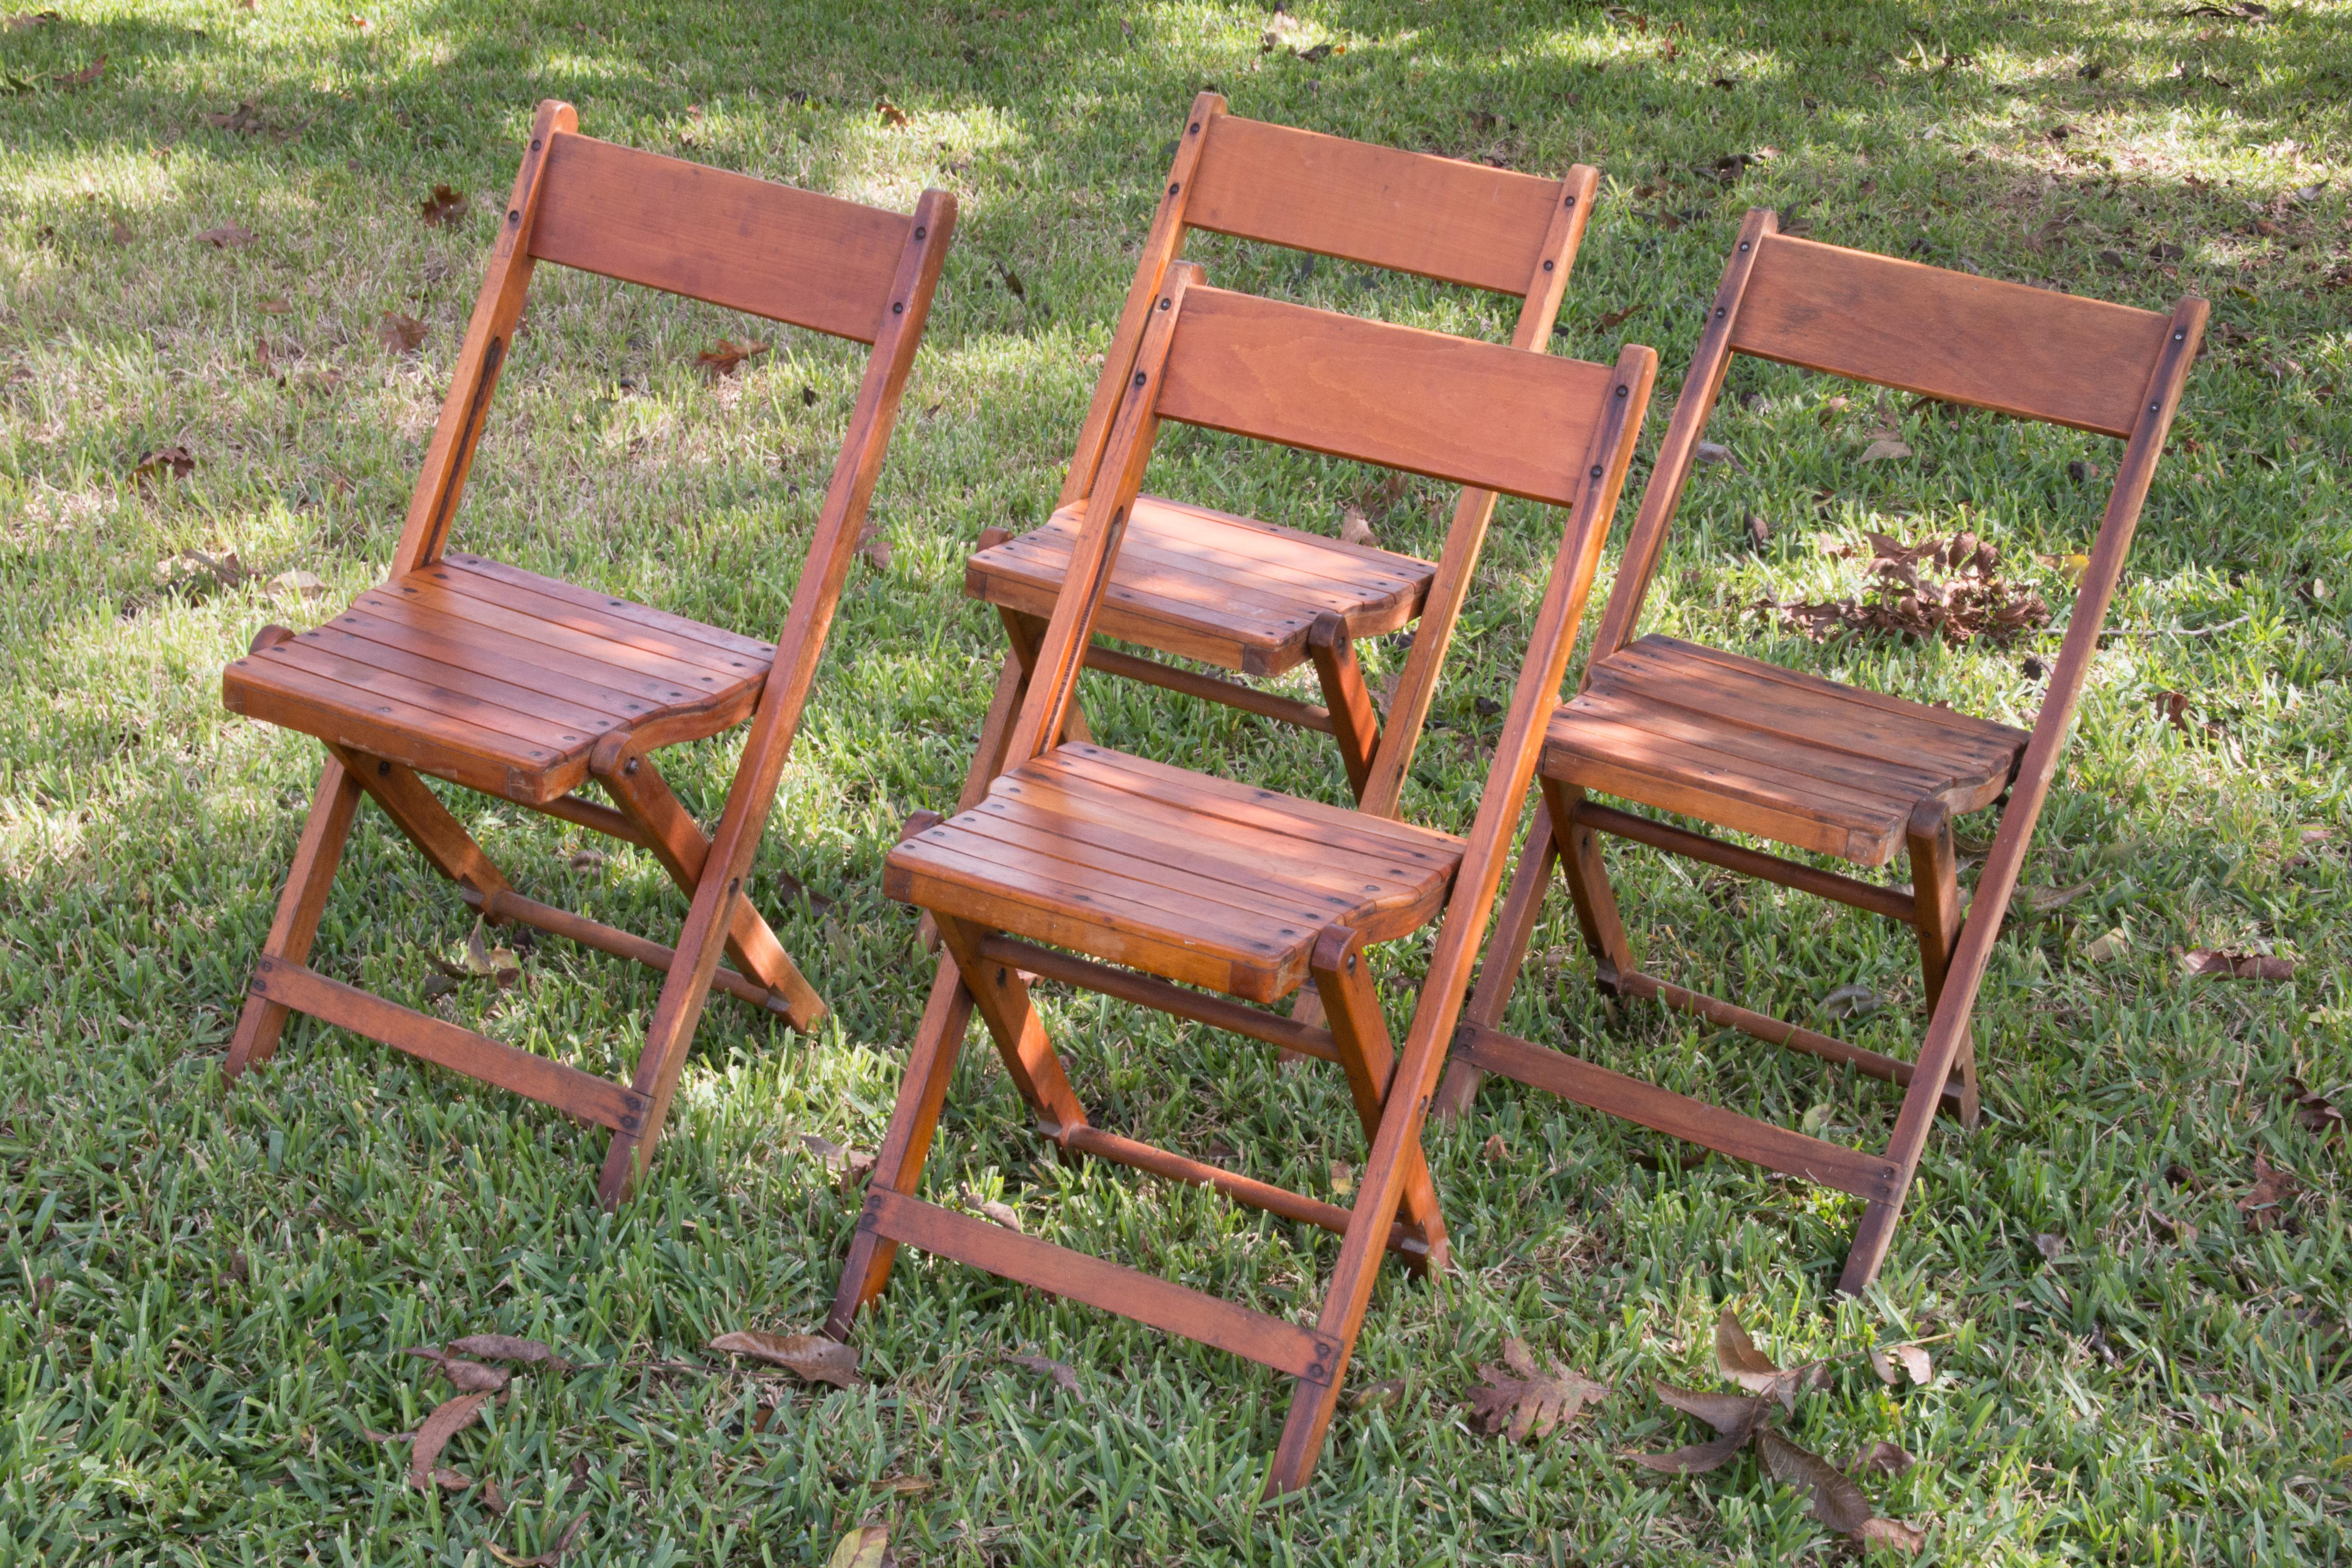 Charming Mid 20th Century Wooden Folding Chairs. Fine Quality Solid Wood.  These Would